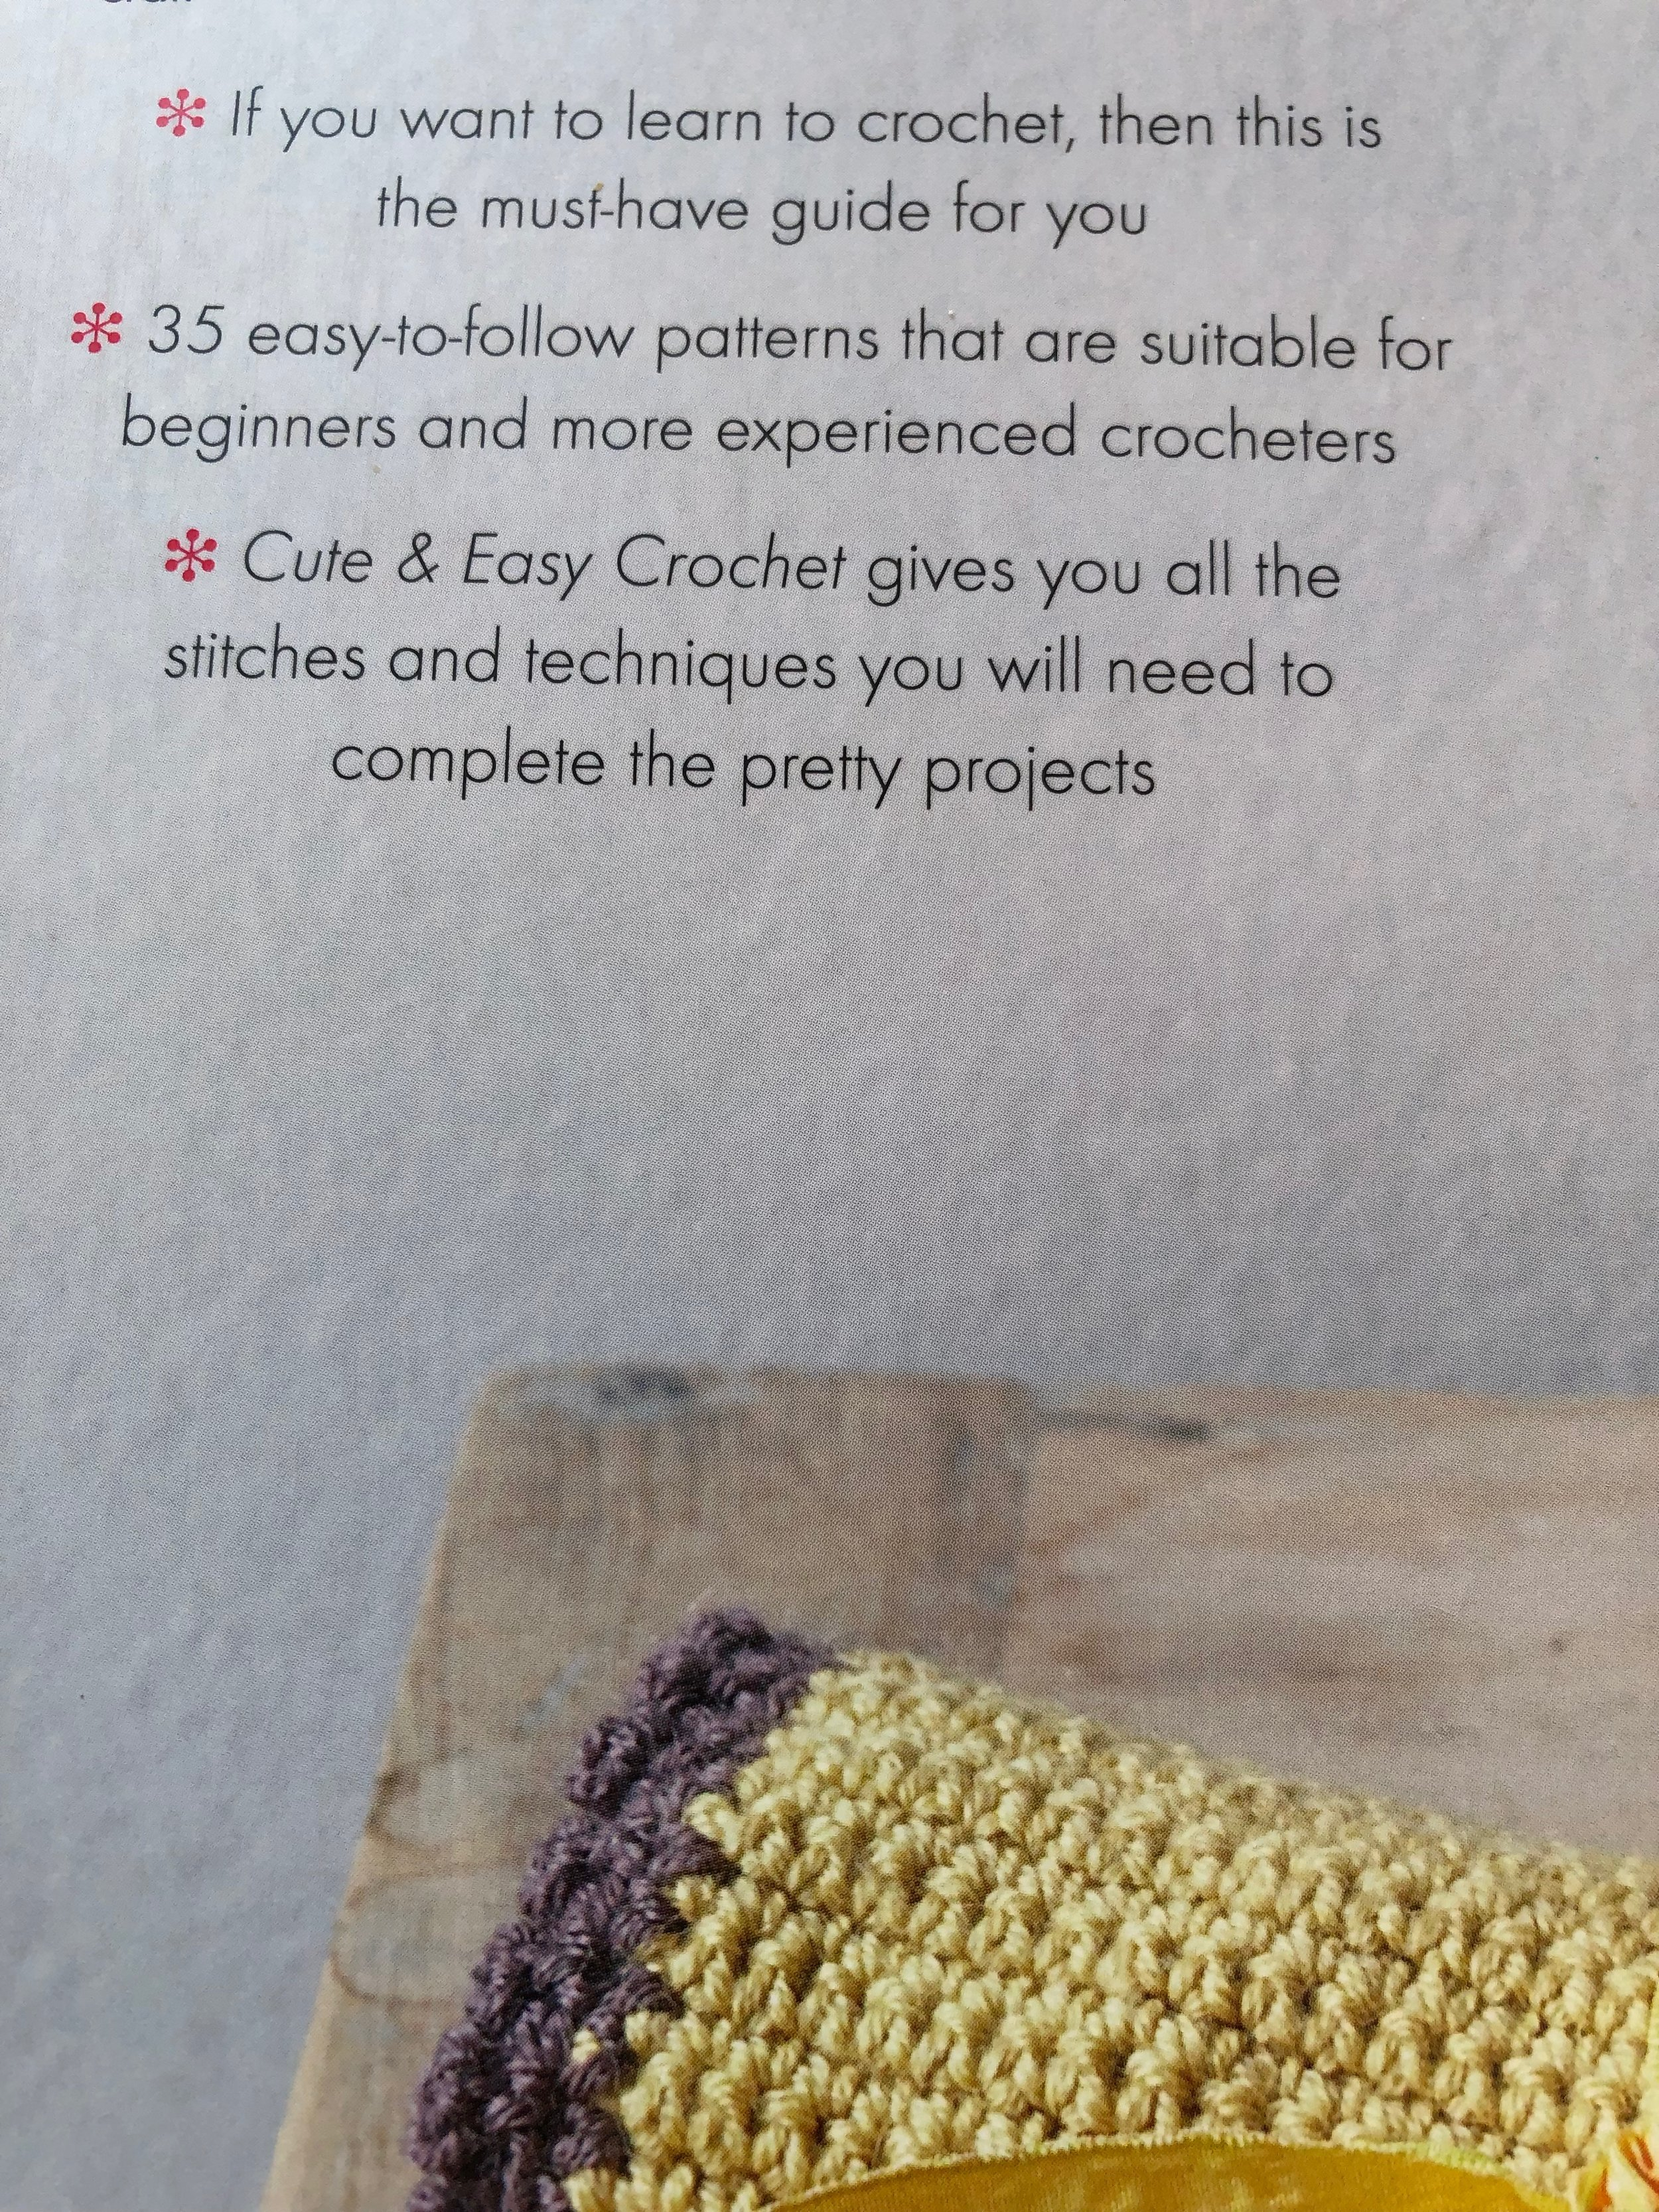 Cute and easy crochet book